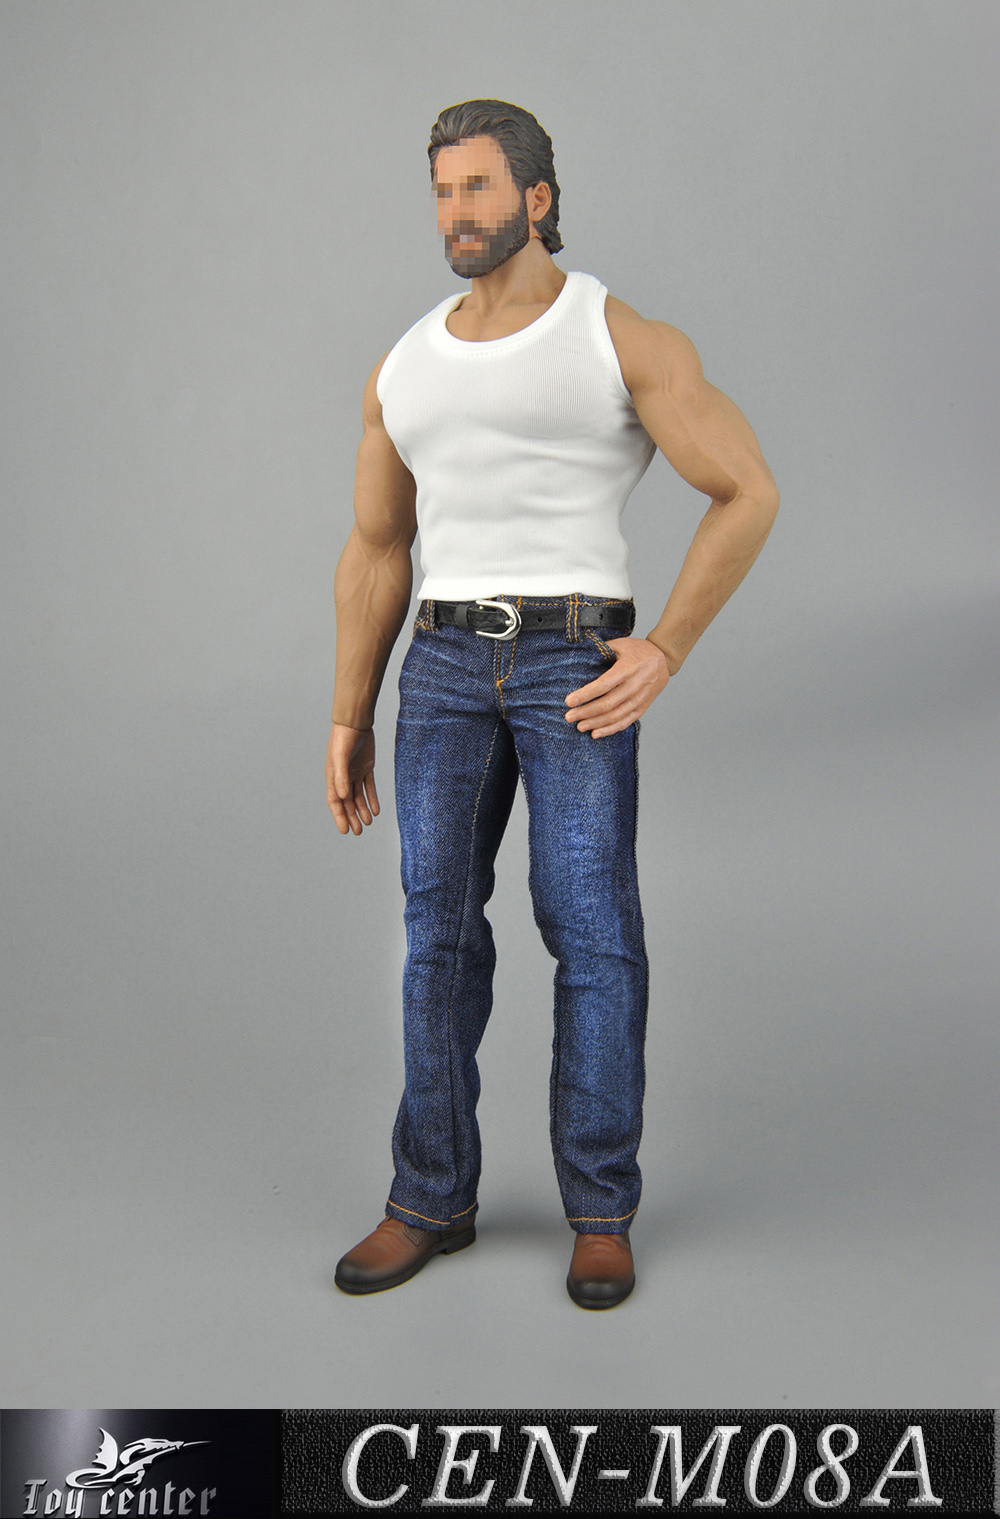 clothes - NEW PRODUCT: Toy Center: 1/6 Sports Vest Jeans Set - Three Colors A/B/C 1899